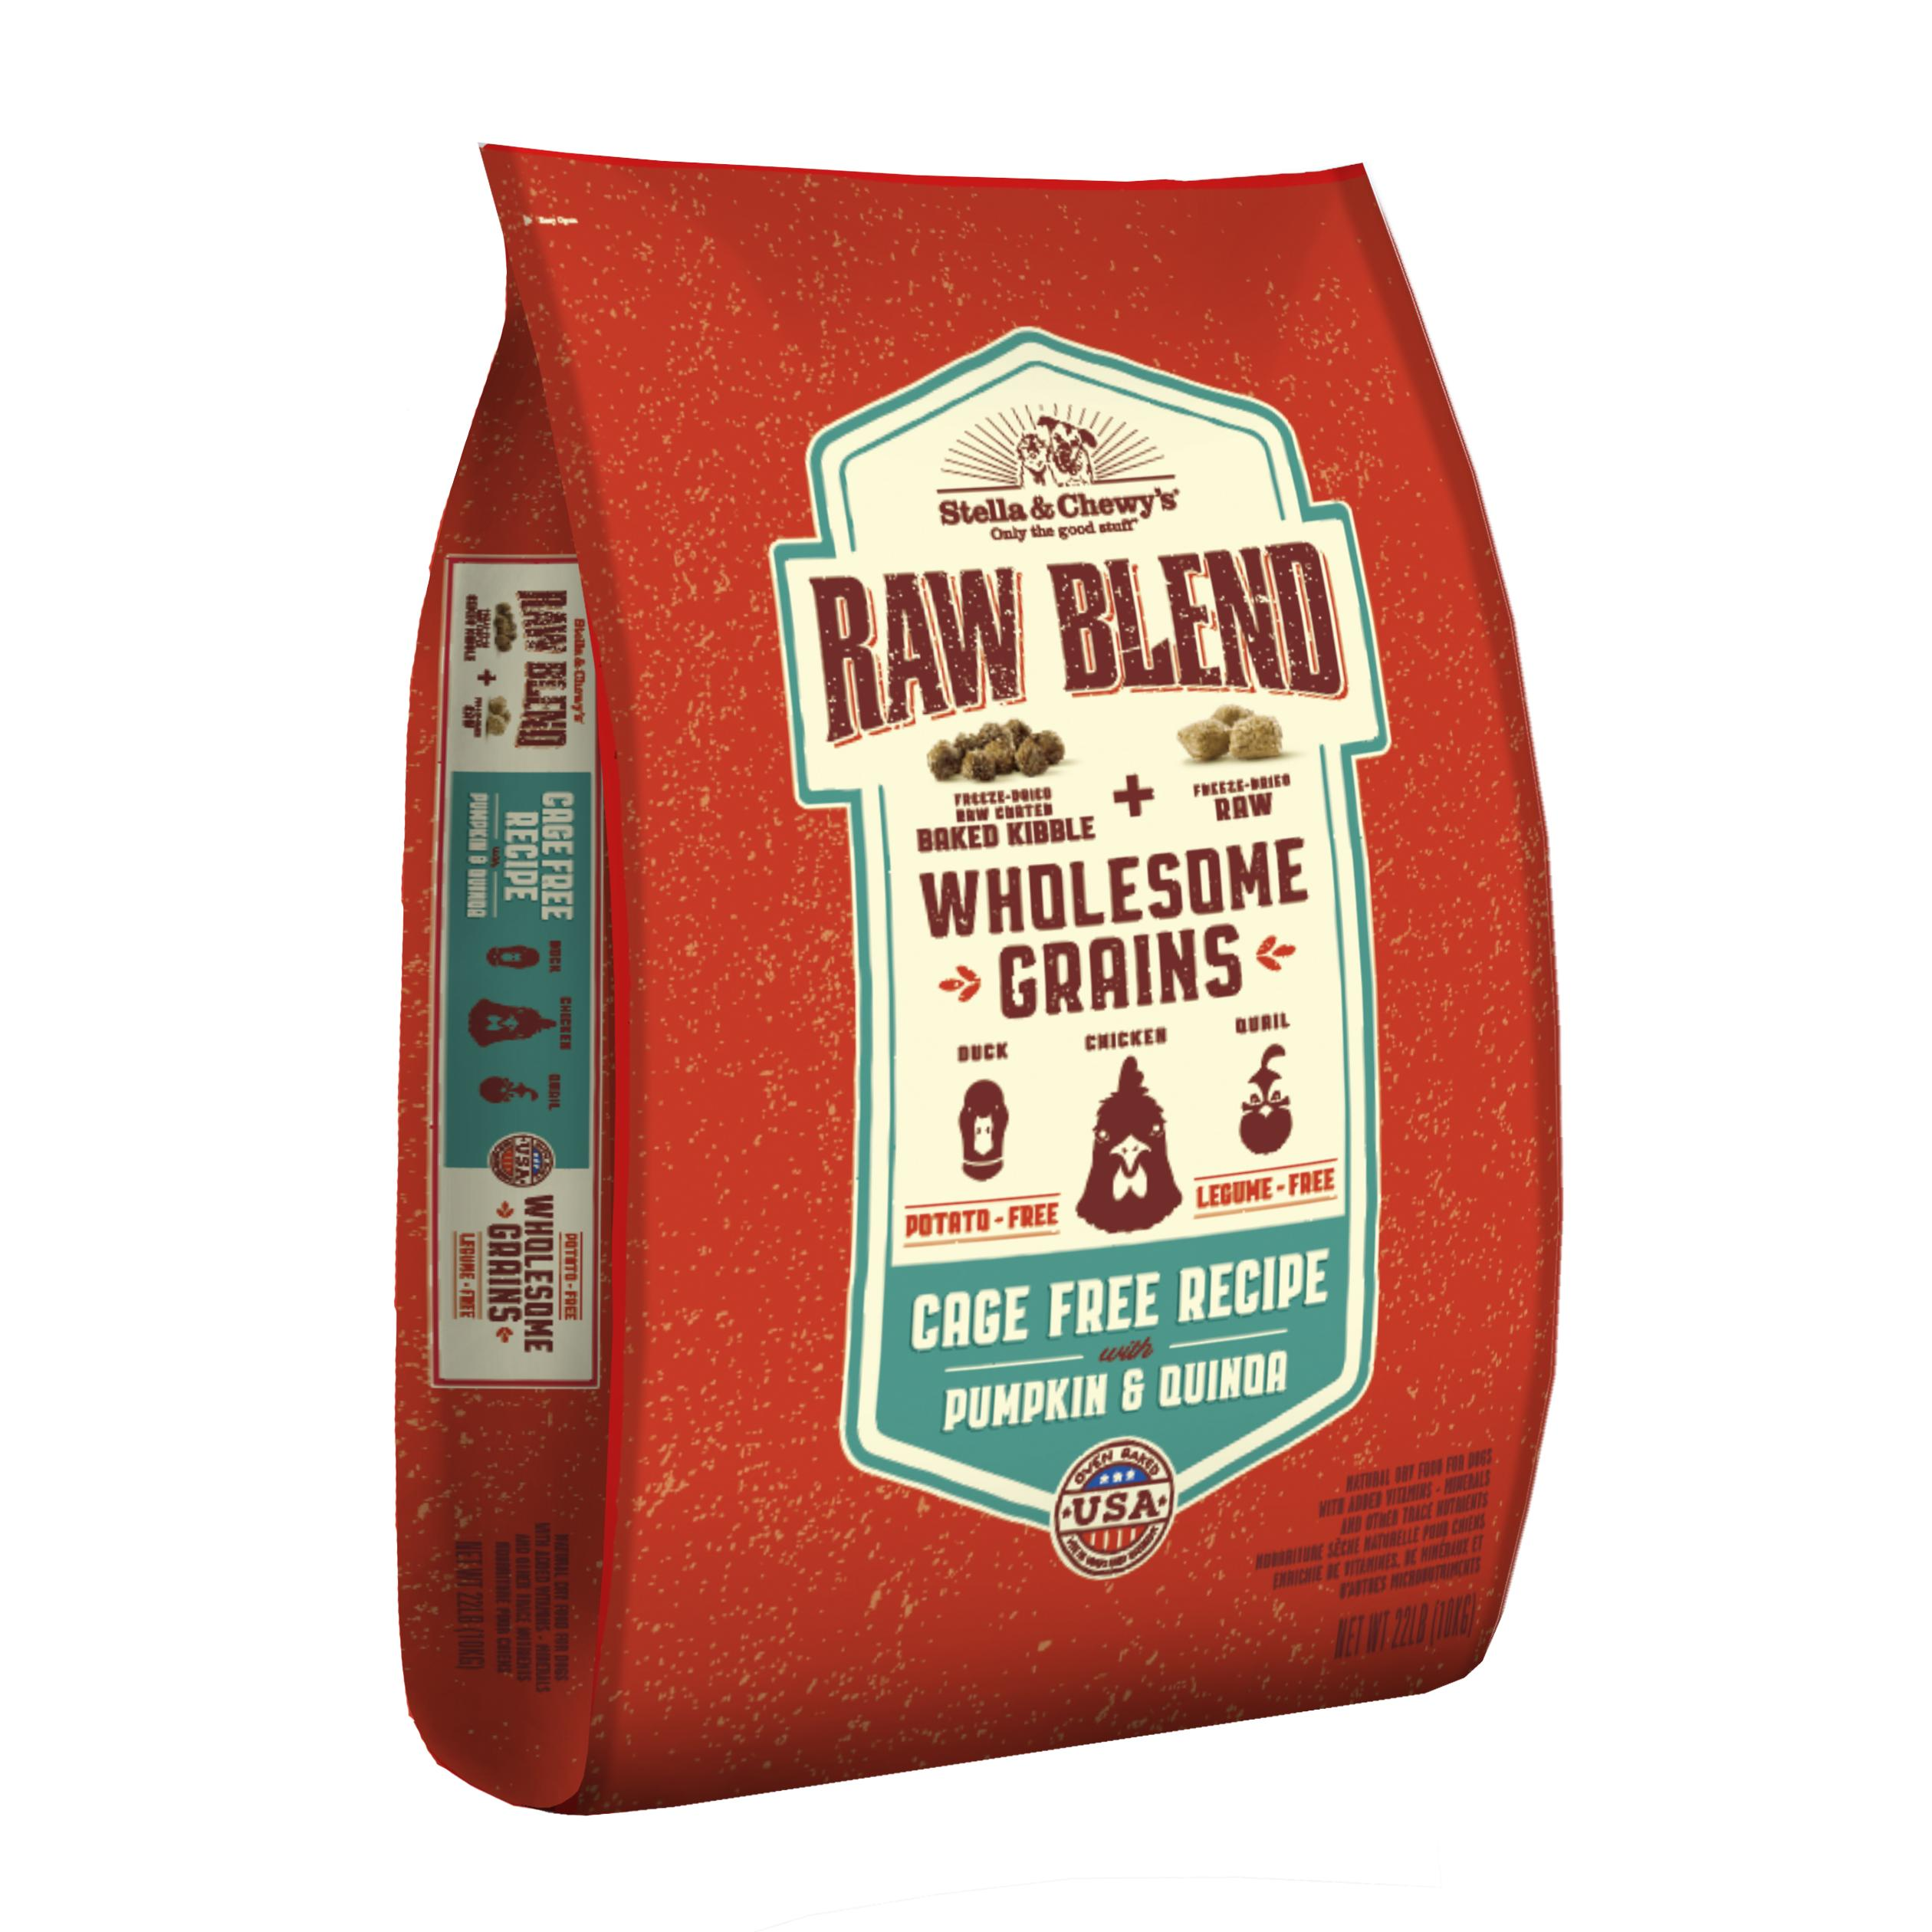 Stella & Chewy'sRaw Blend Wholesome Grains Cage-Free Recipe with Pumpkin & Quinoa Dry Dog Food, 22-lb